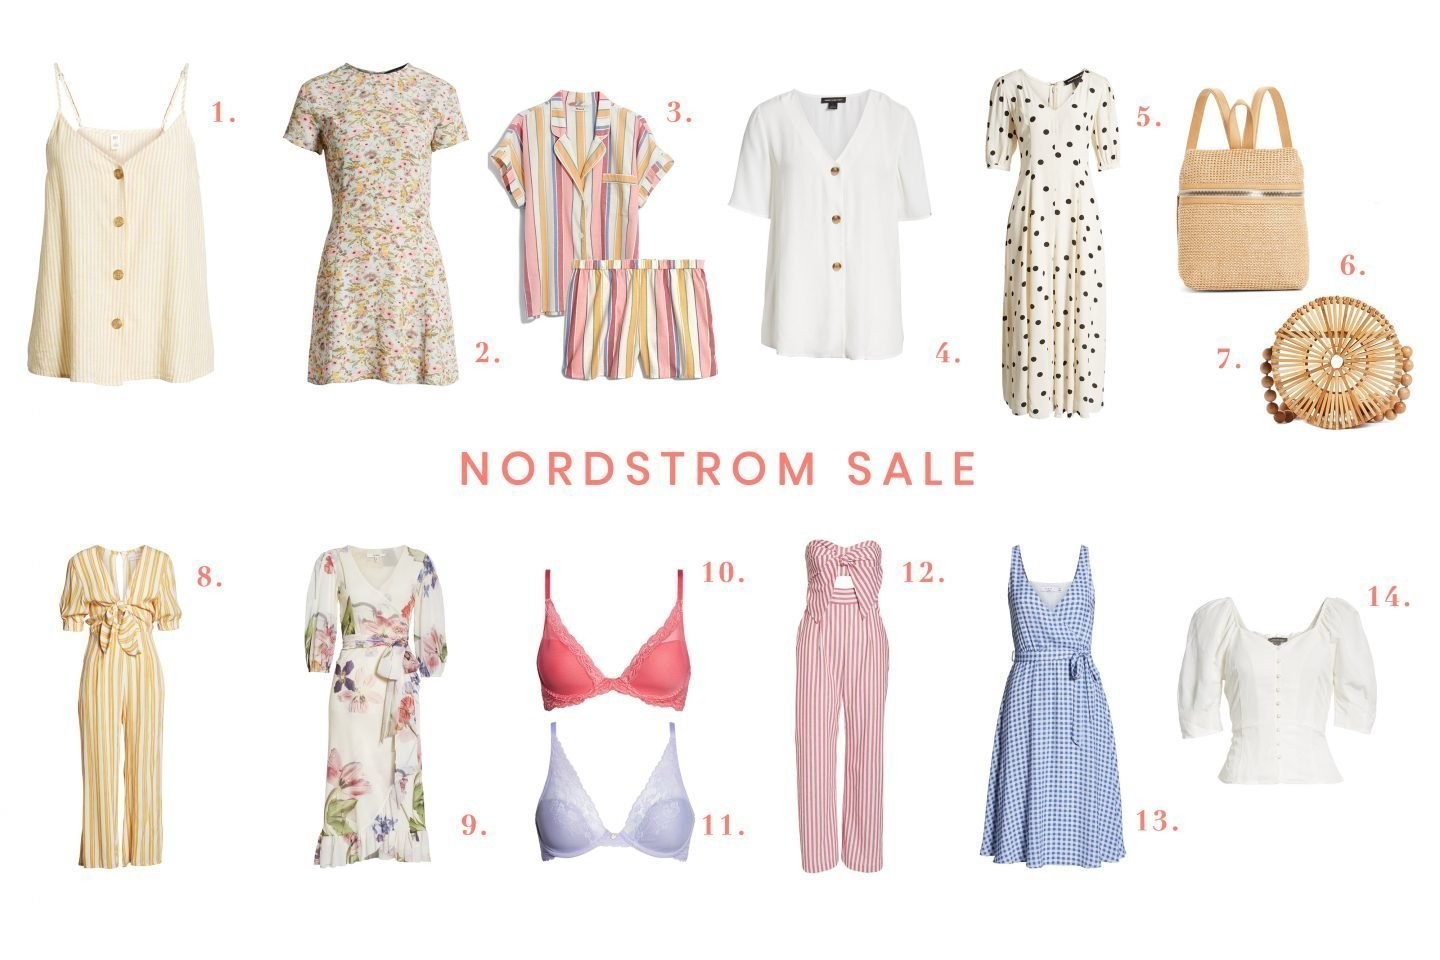 Nordstrom Sale - best deals on Ashley Brooke Designs